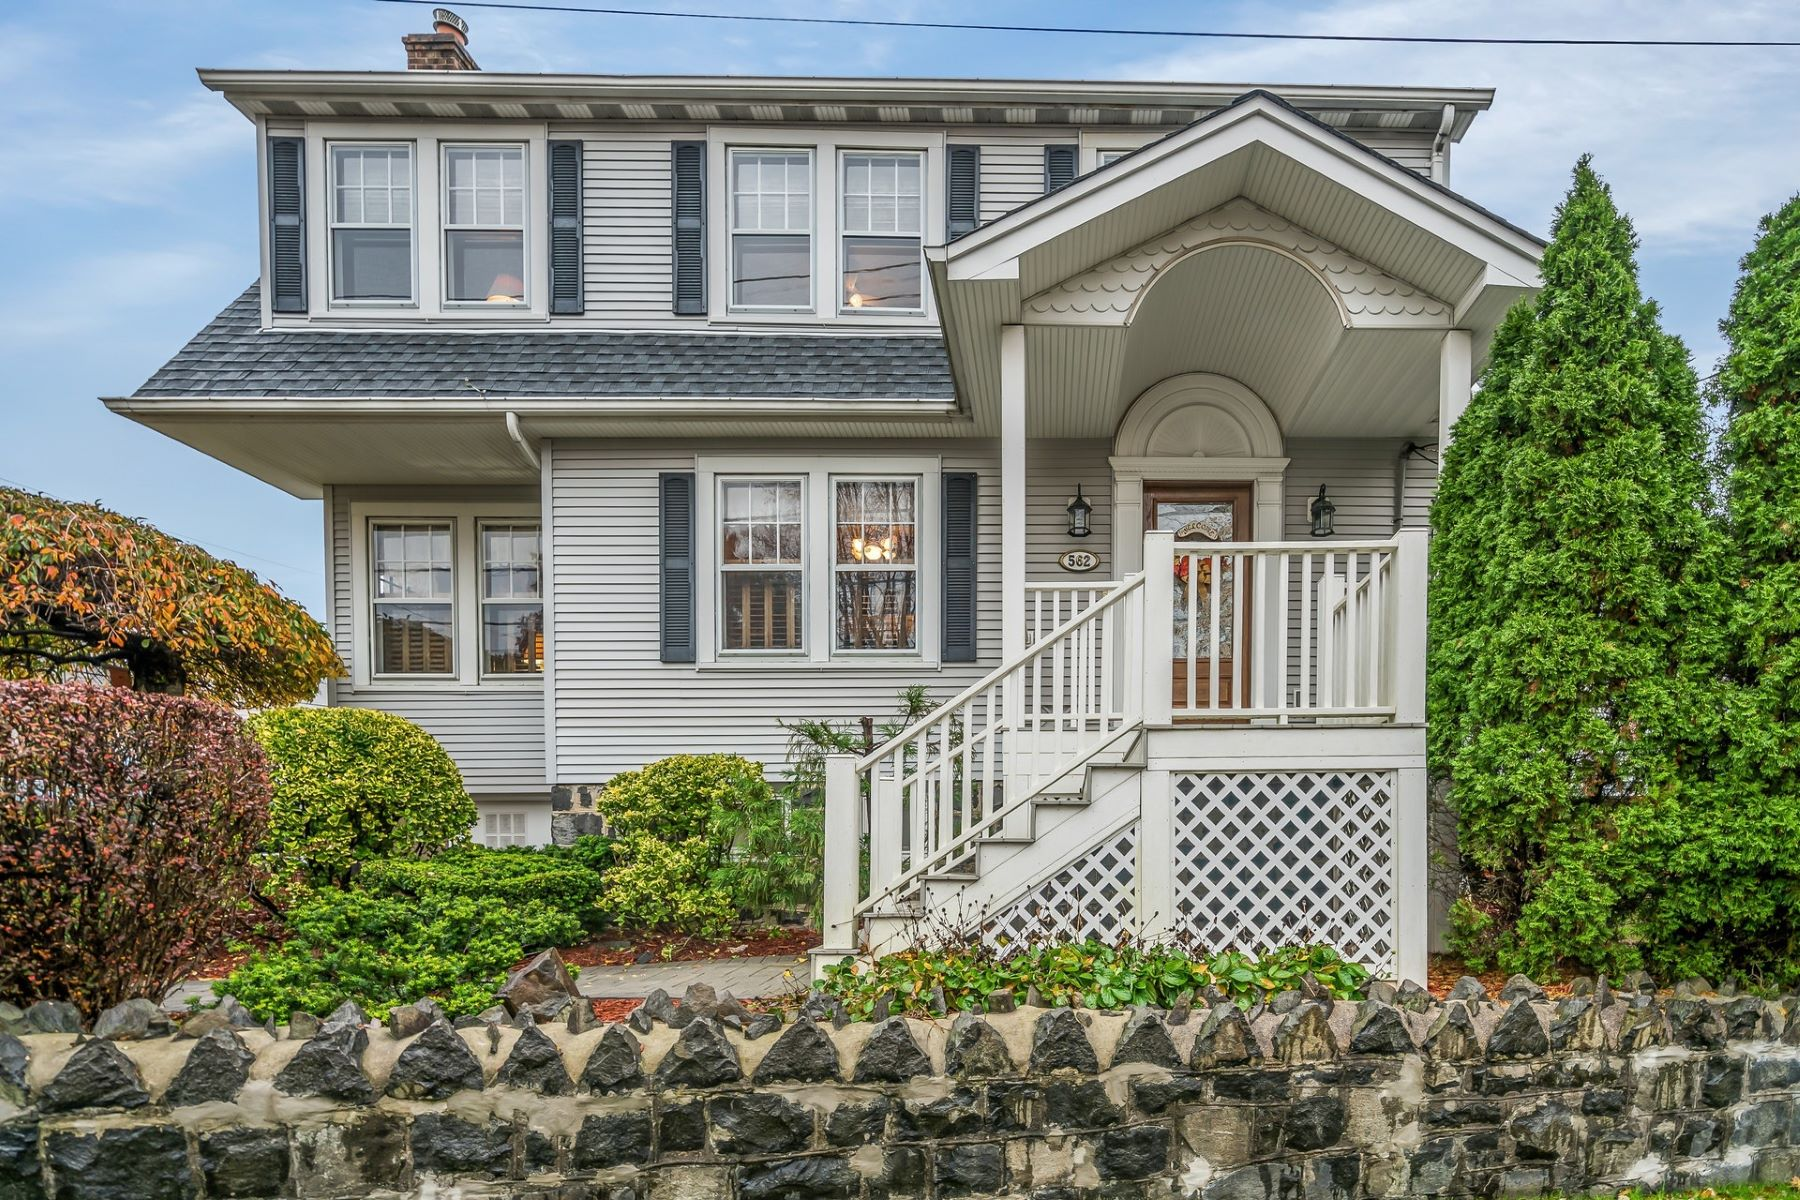 Single Family Home for Sale at Beautiful Dutch Colonial 562 Winterburn Grv, Cliffside Park, New Jersey 07010 United States